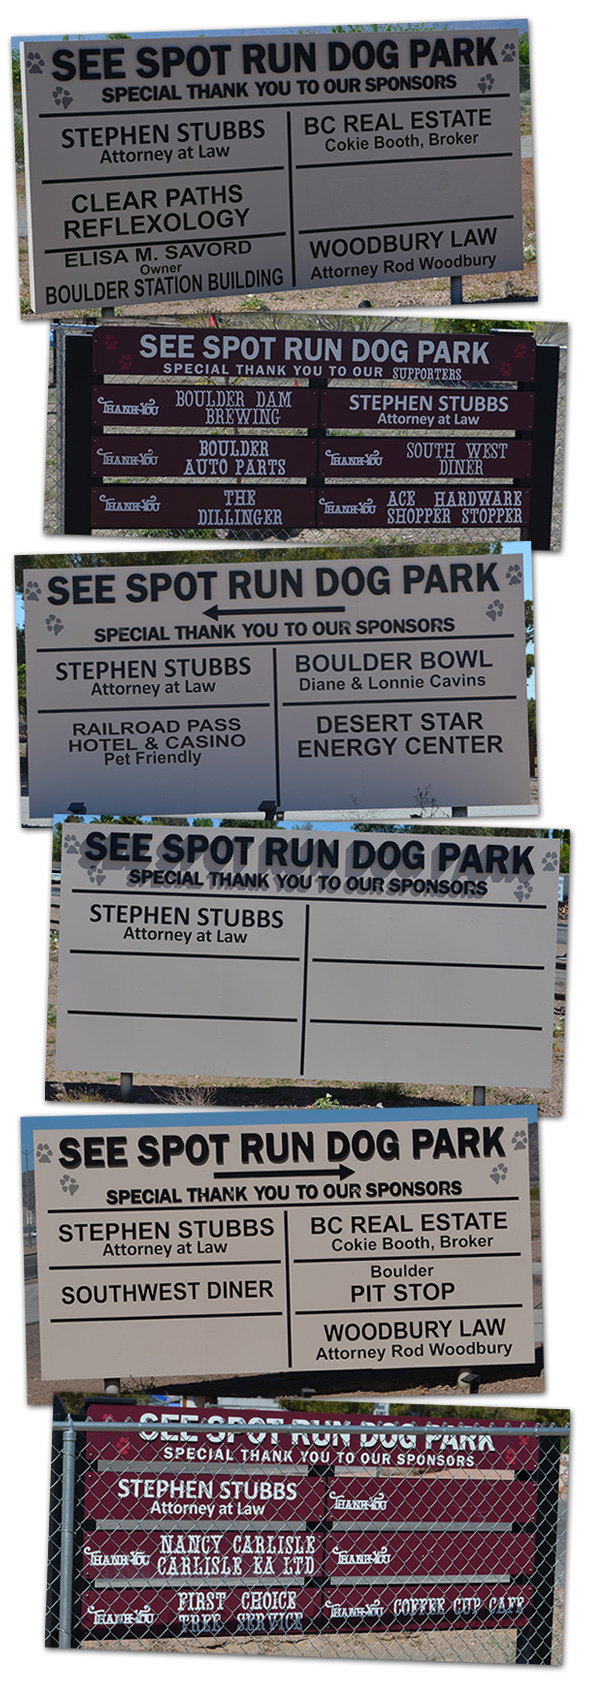 See Spot Run Supporters in Boulder City, Nevada